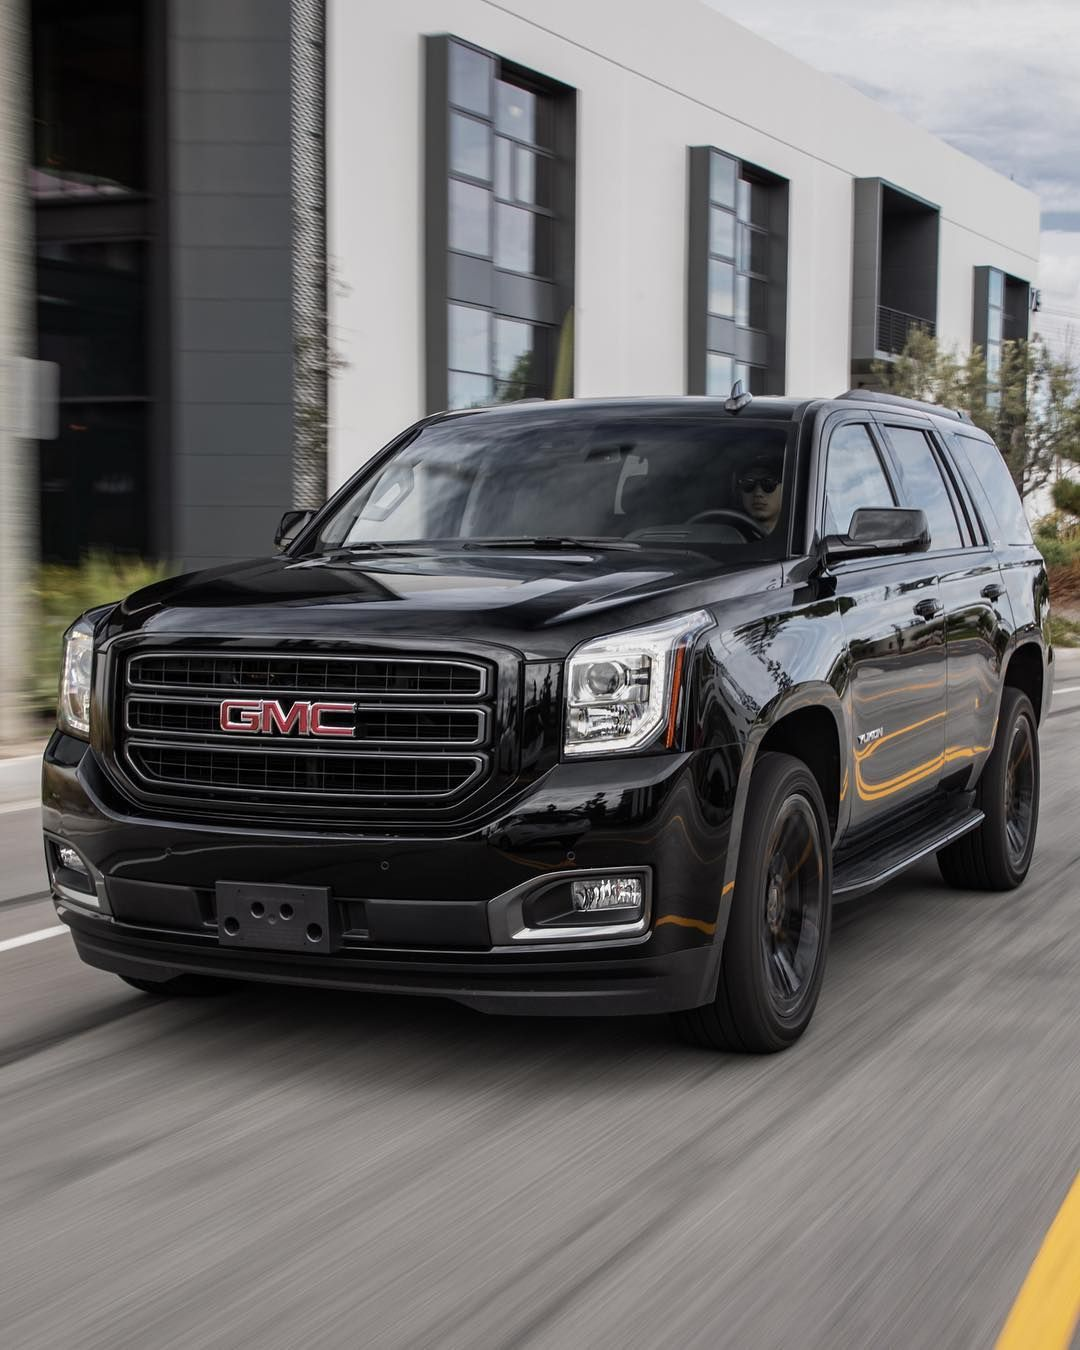 Motortrend On Instagram One Look At The 2019 Gmc Yukon Graphite